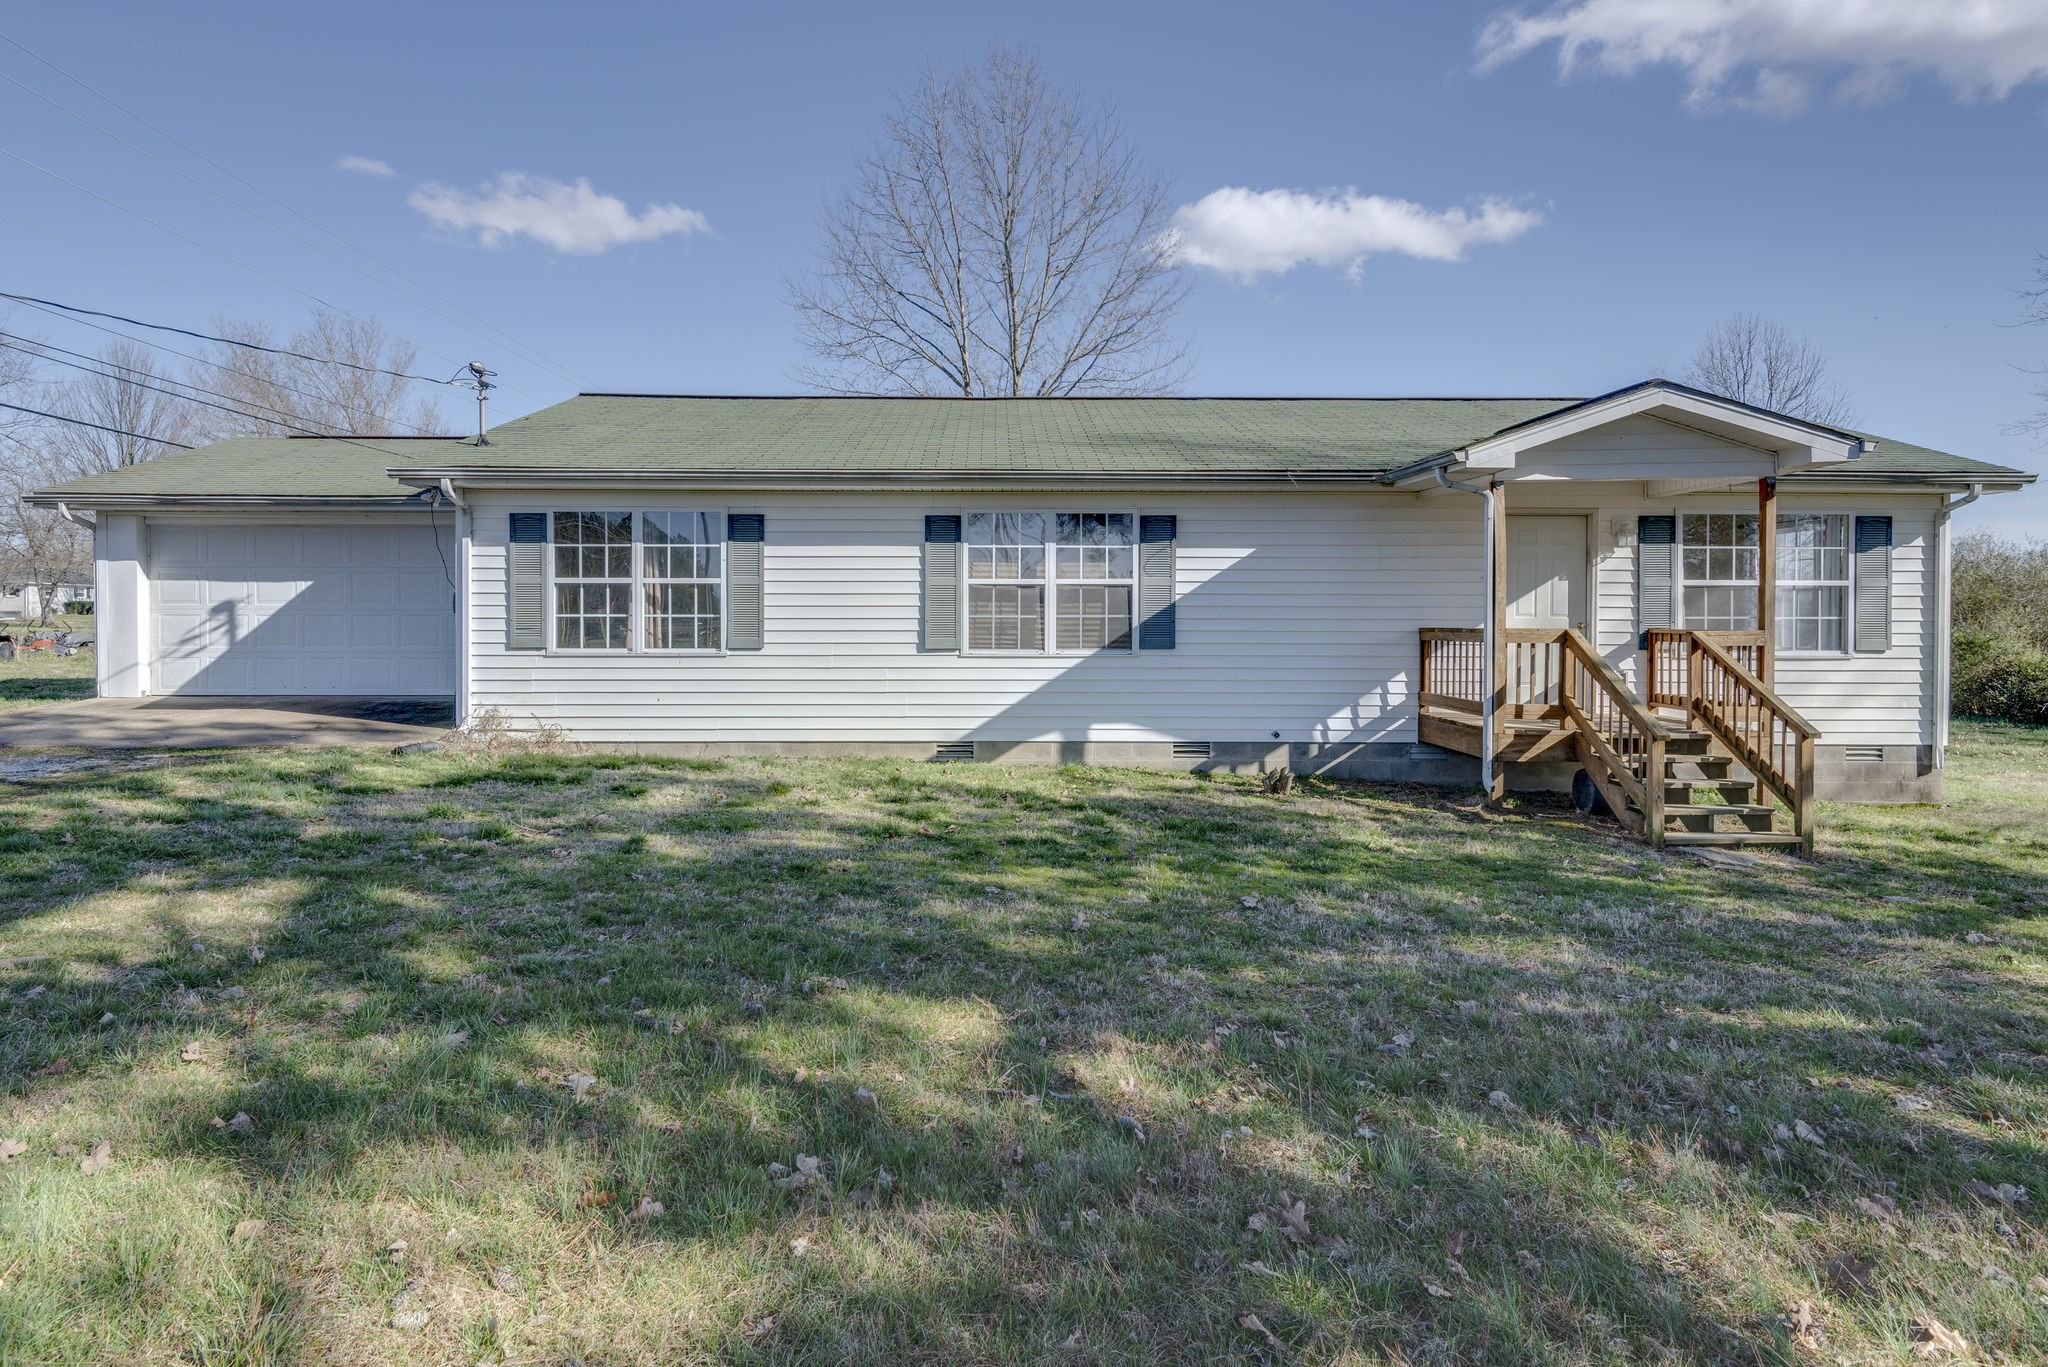 50 Edwards Ln, MC EWEN, TN 37101 - MC EWEN, TN real estate listing